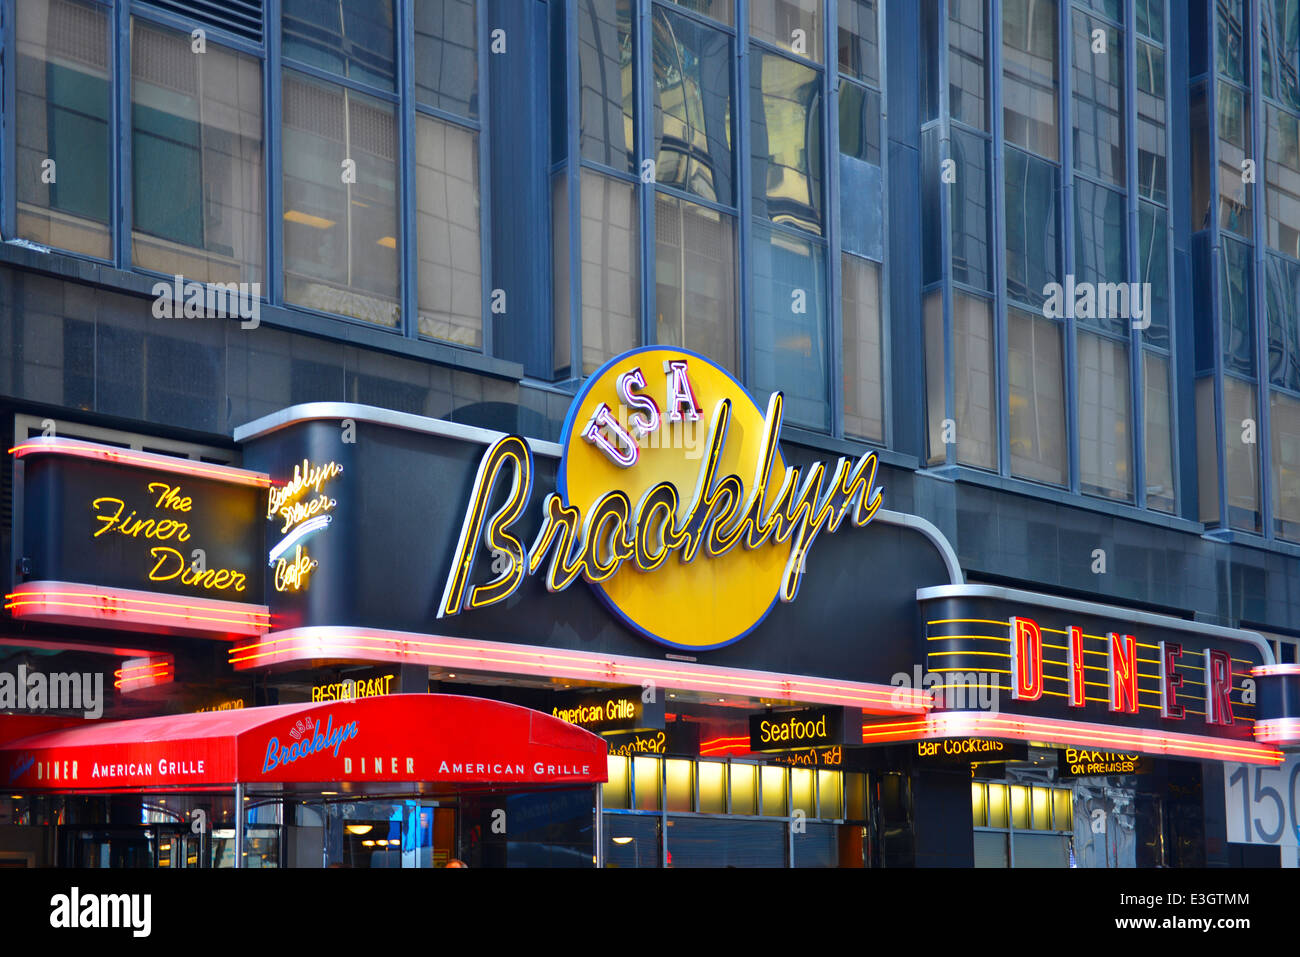 Brooklyn Diner USA American Grille, Times Square, New York - Stock Image